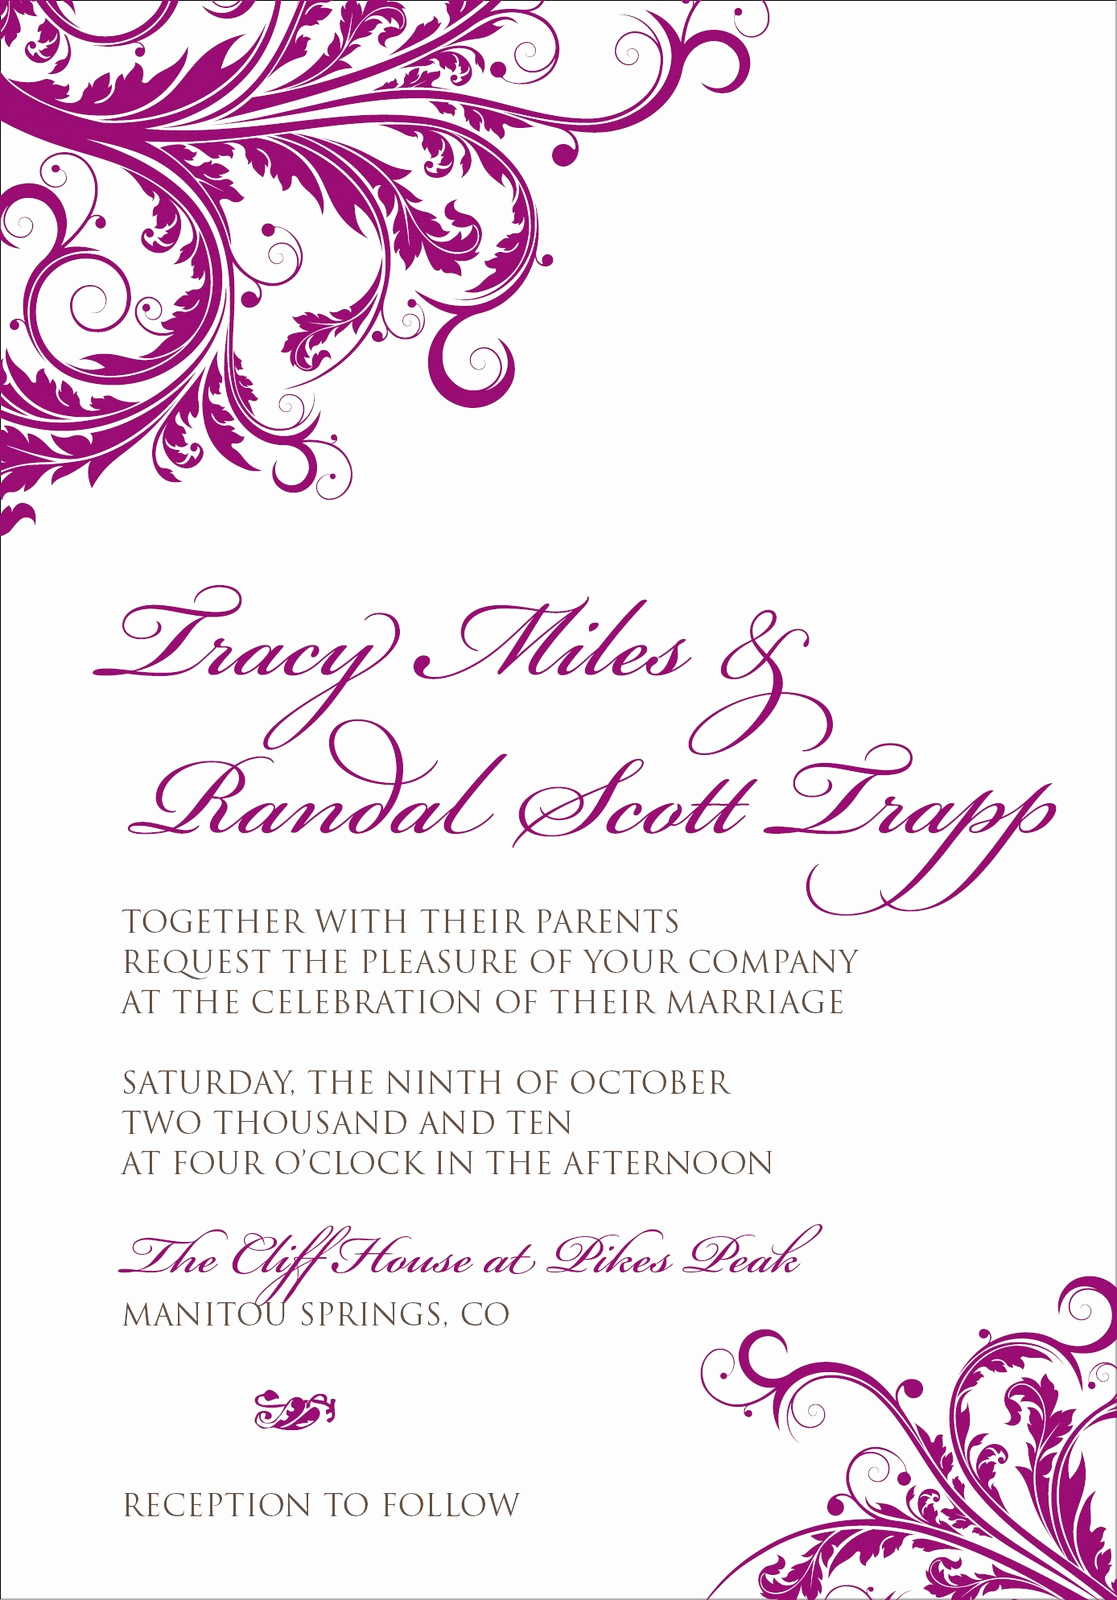 Wedding Invitation Border Design Fresh Free Border Templates for Invitations